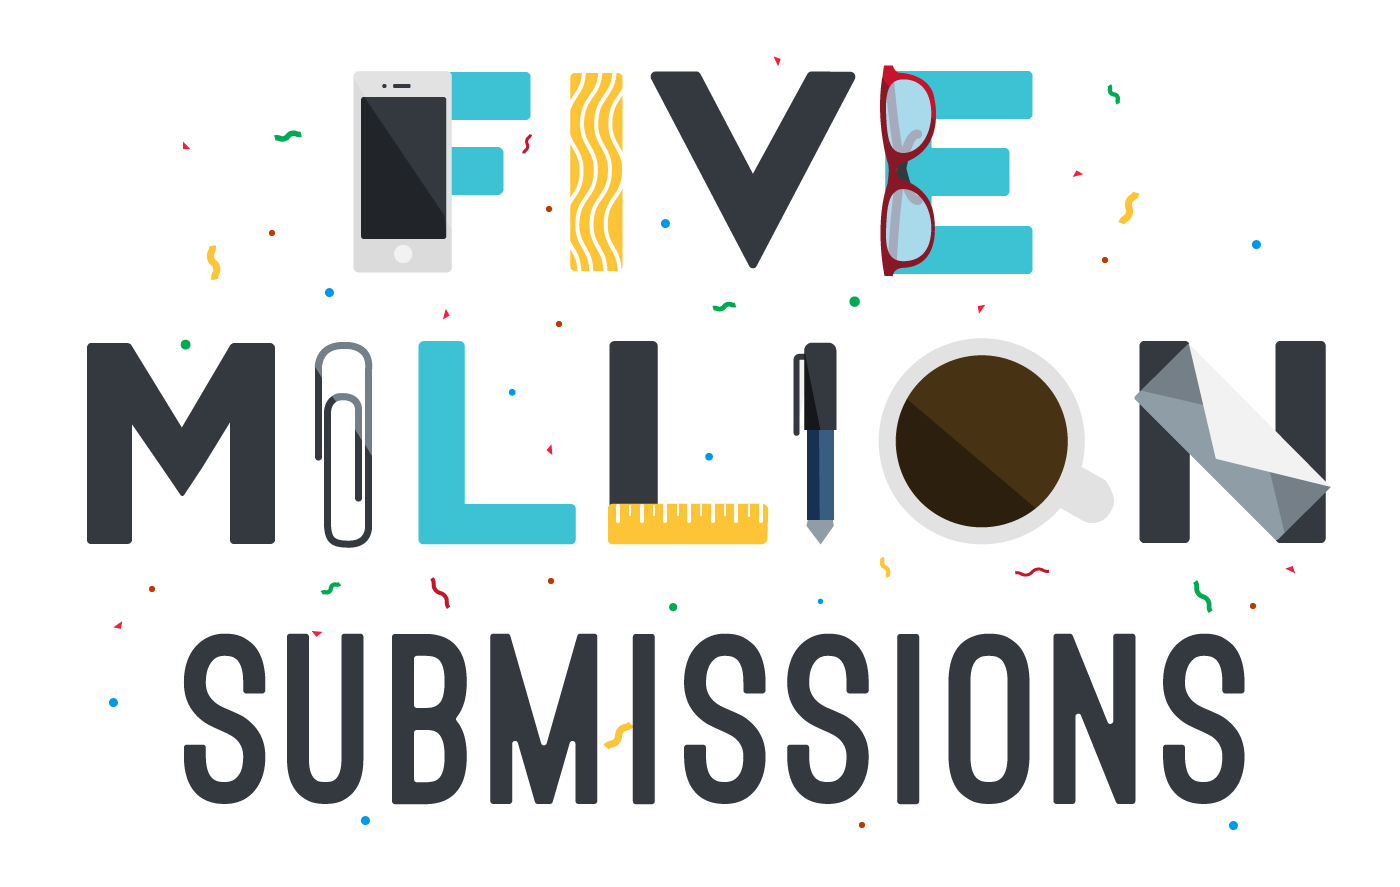 5 million submissions for Canvas